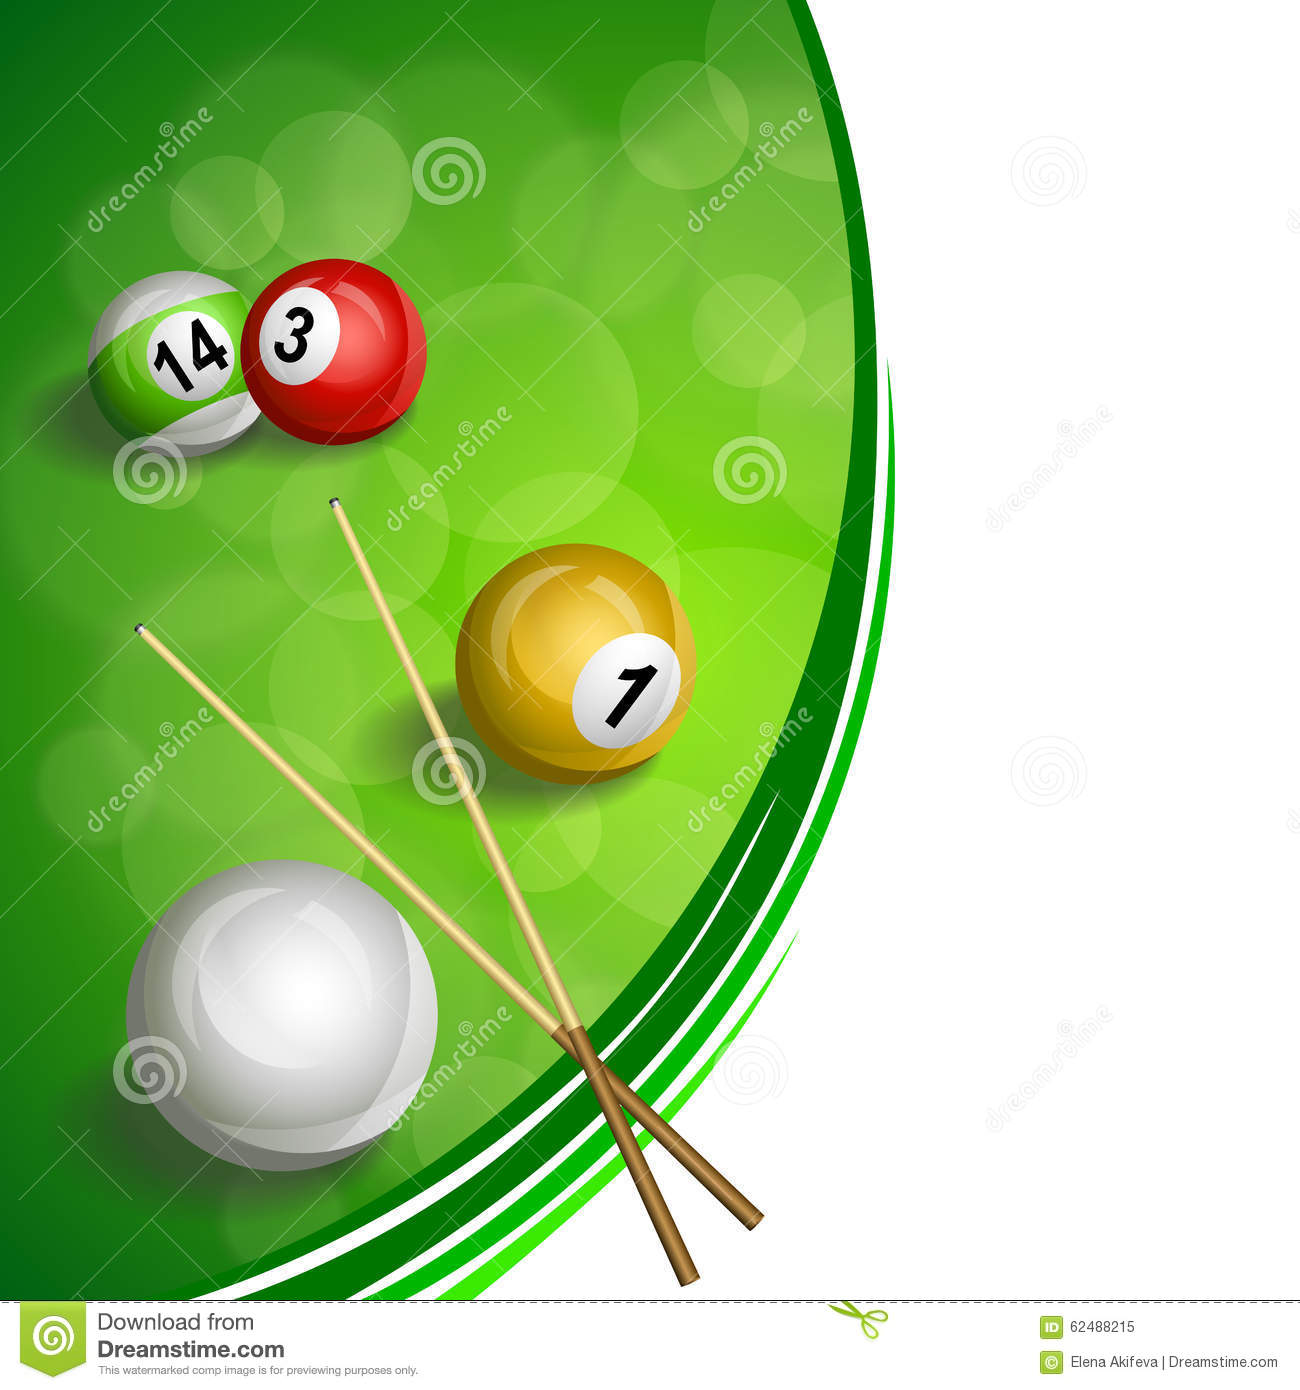 Background abstract green billiard pool cue red yellow white ball illustration